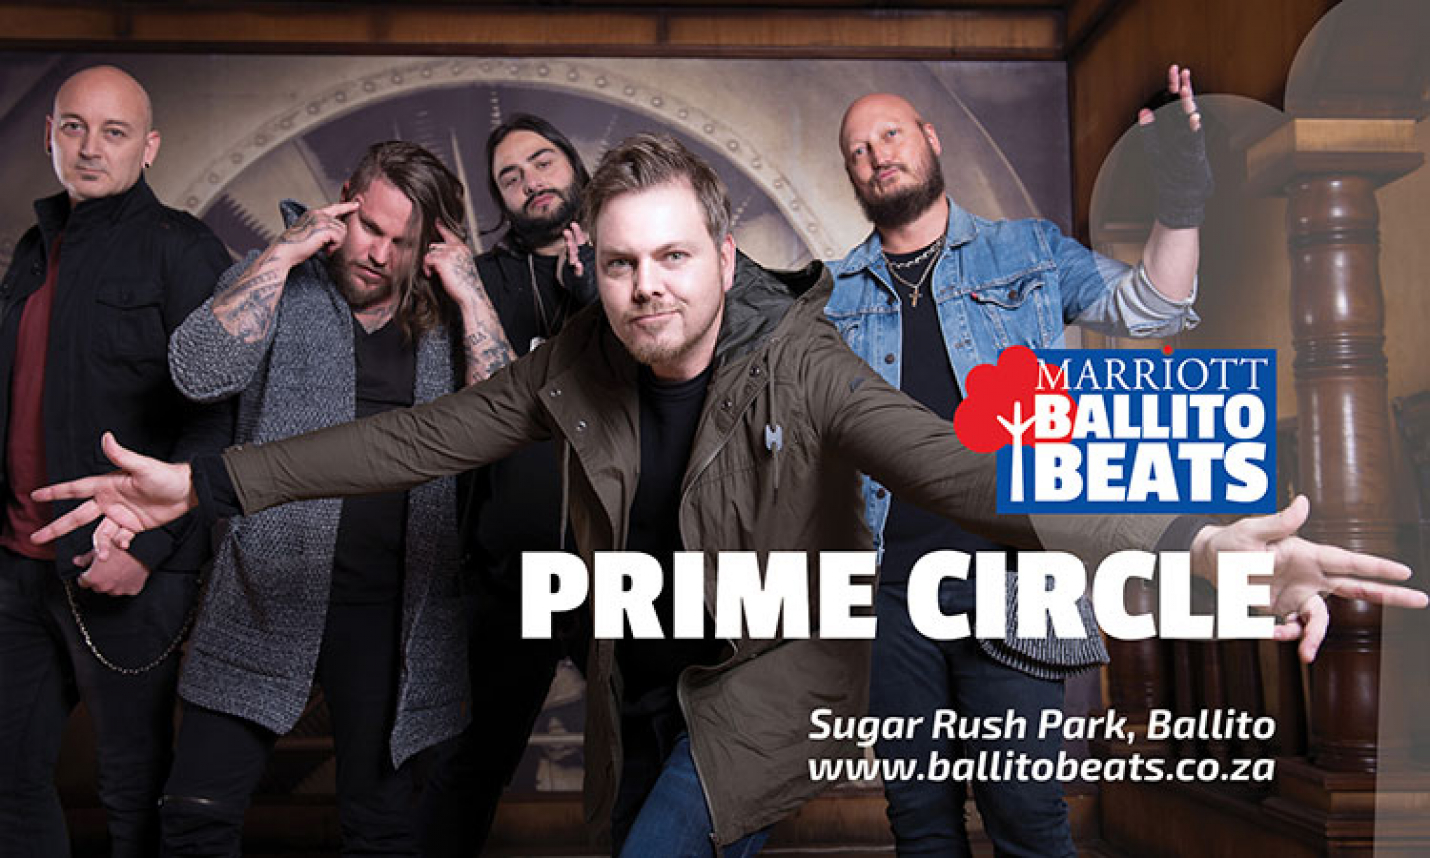 GET READY TO ROCK, BALLITO. PRIME CIRCLE IS COMING TO TOWN!